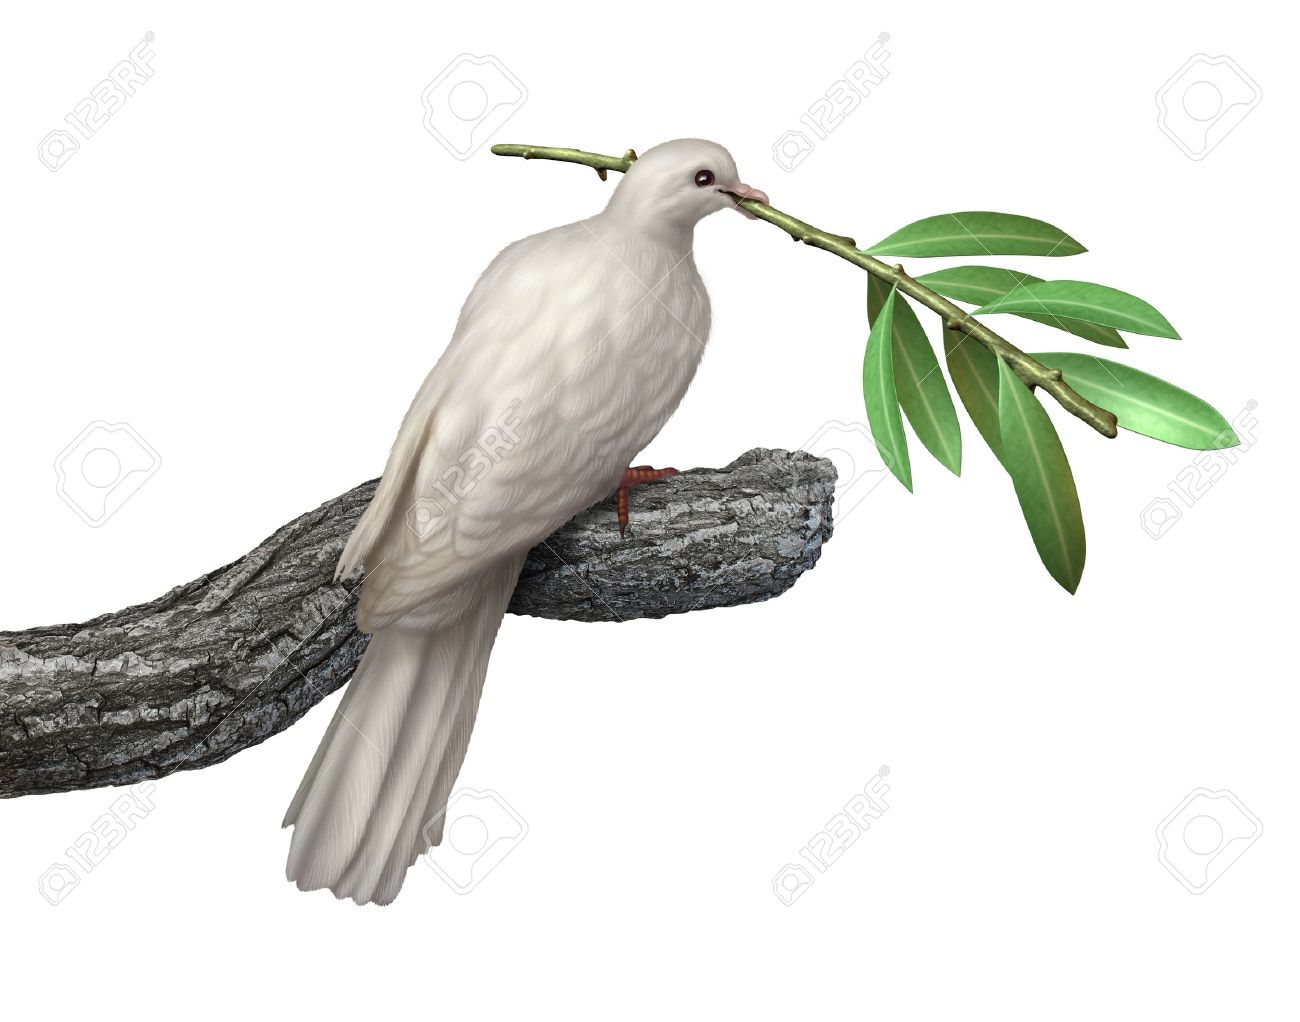 Dove holding an olive branch isolated on a white background as a symbol of peace and tranquility and hope for the future of humanity on the journey for human rights and freedom - 17127590